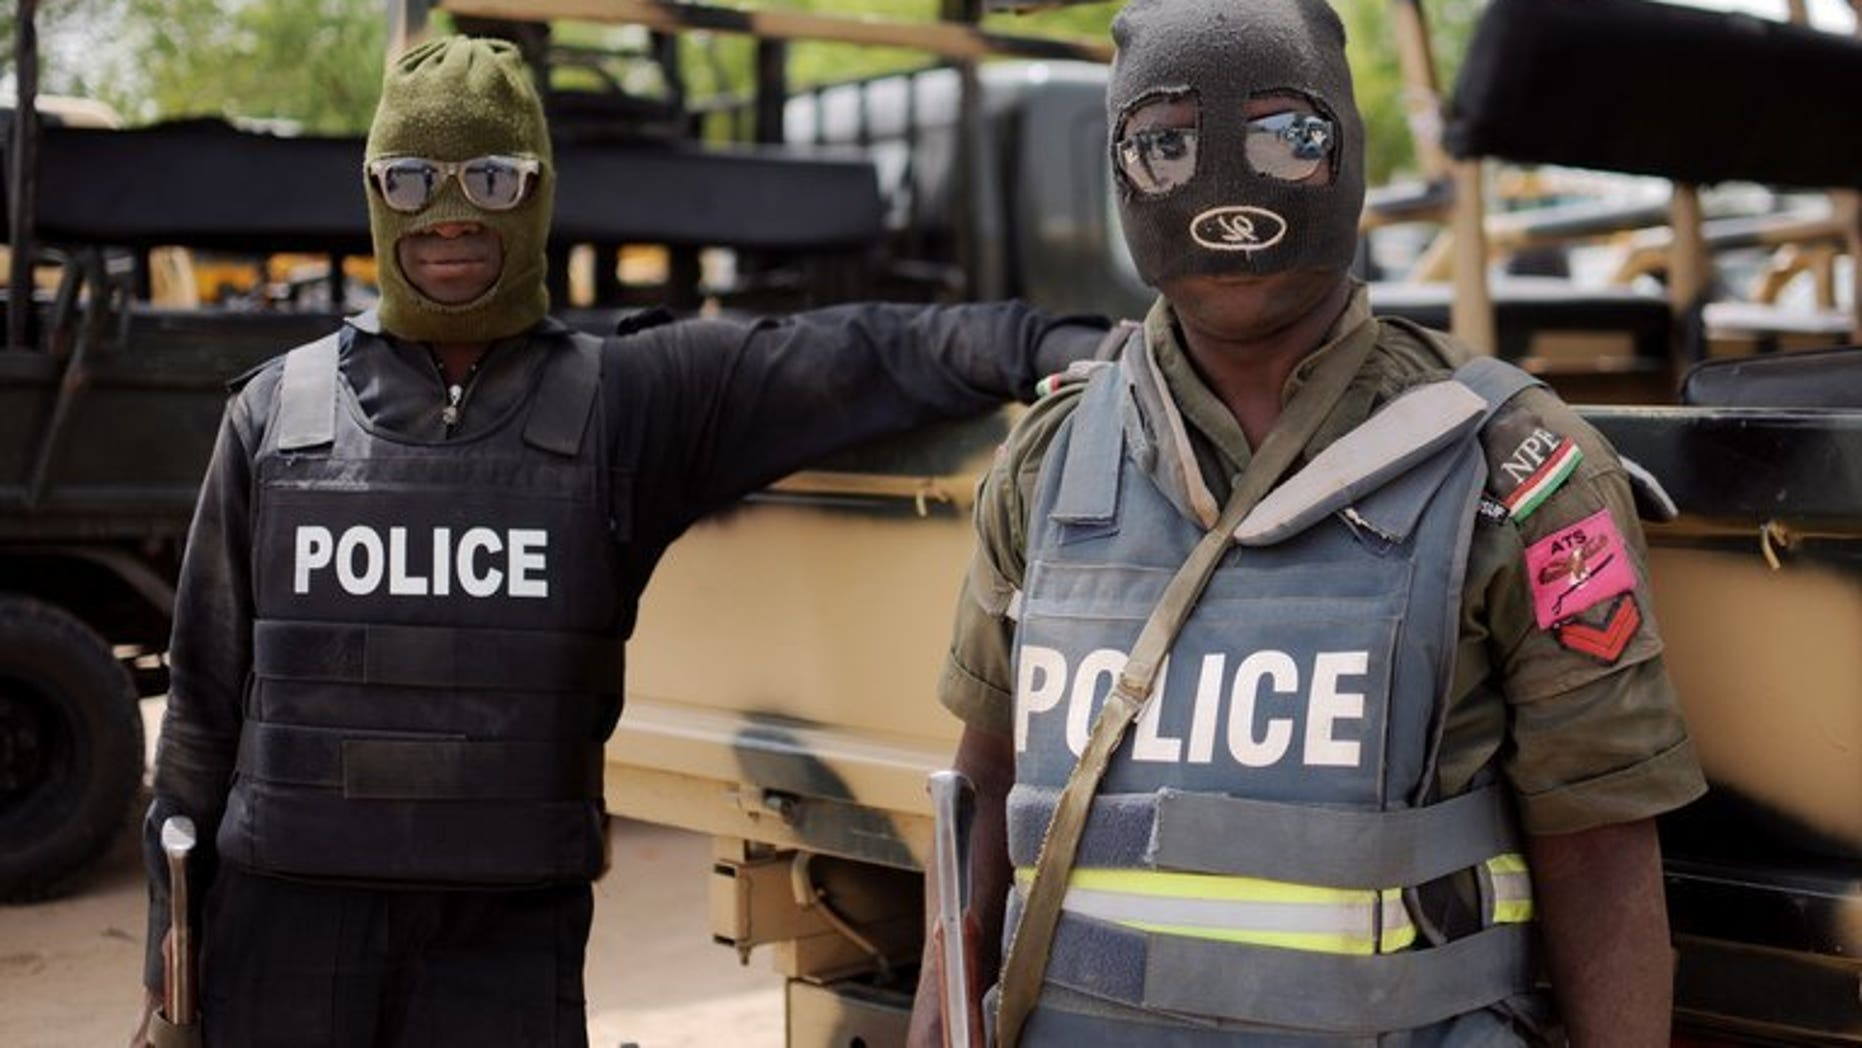 Nigerian police in Borno state pose prior to a patrol in former Boko Haram headquarters in Maiduguri on June 5, 2013.